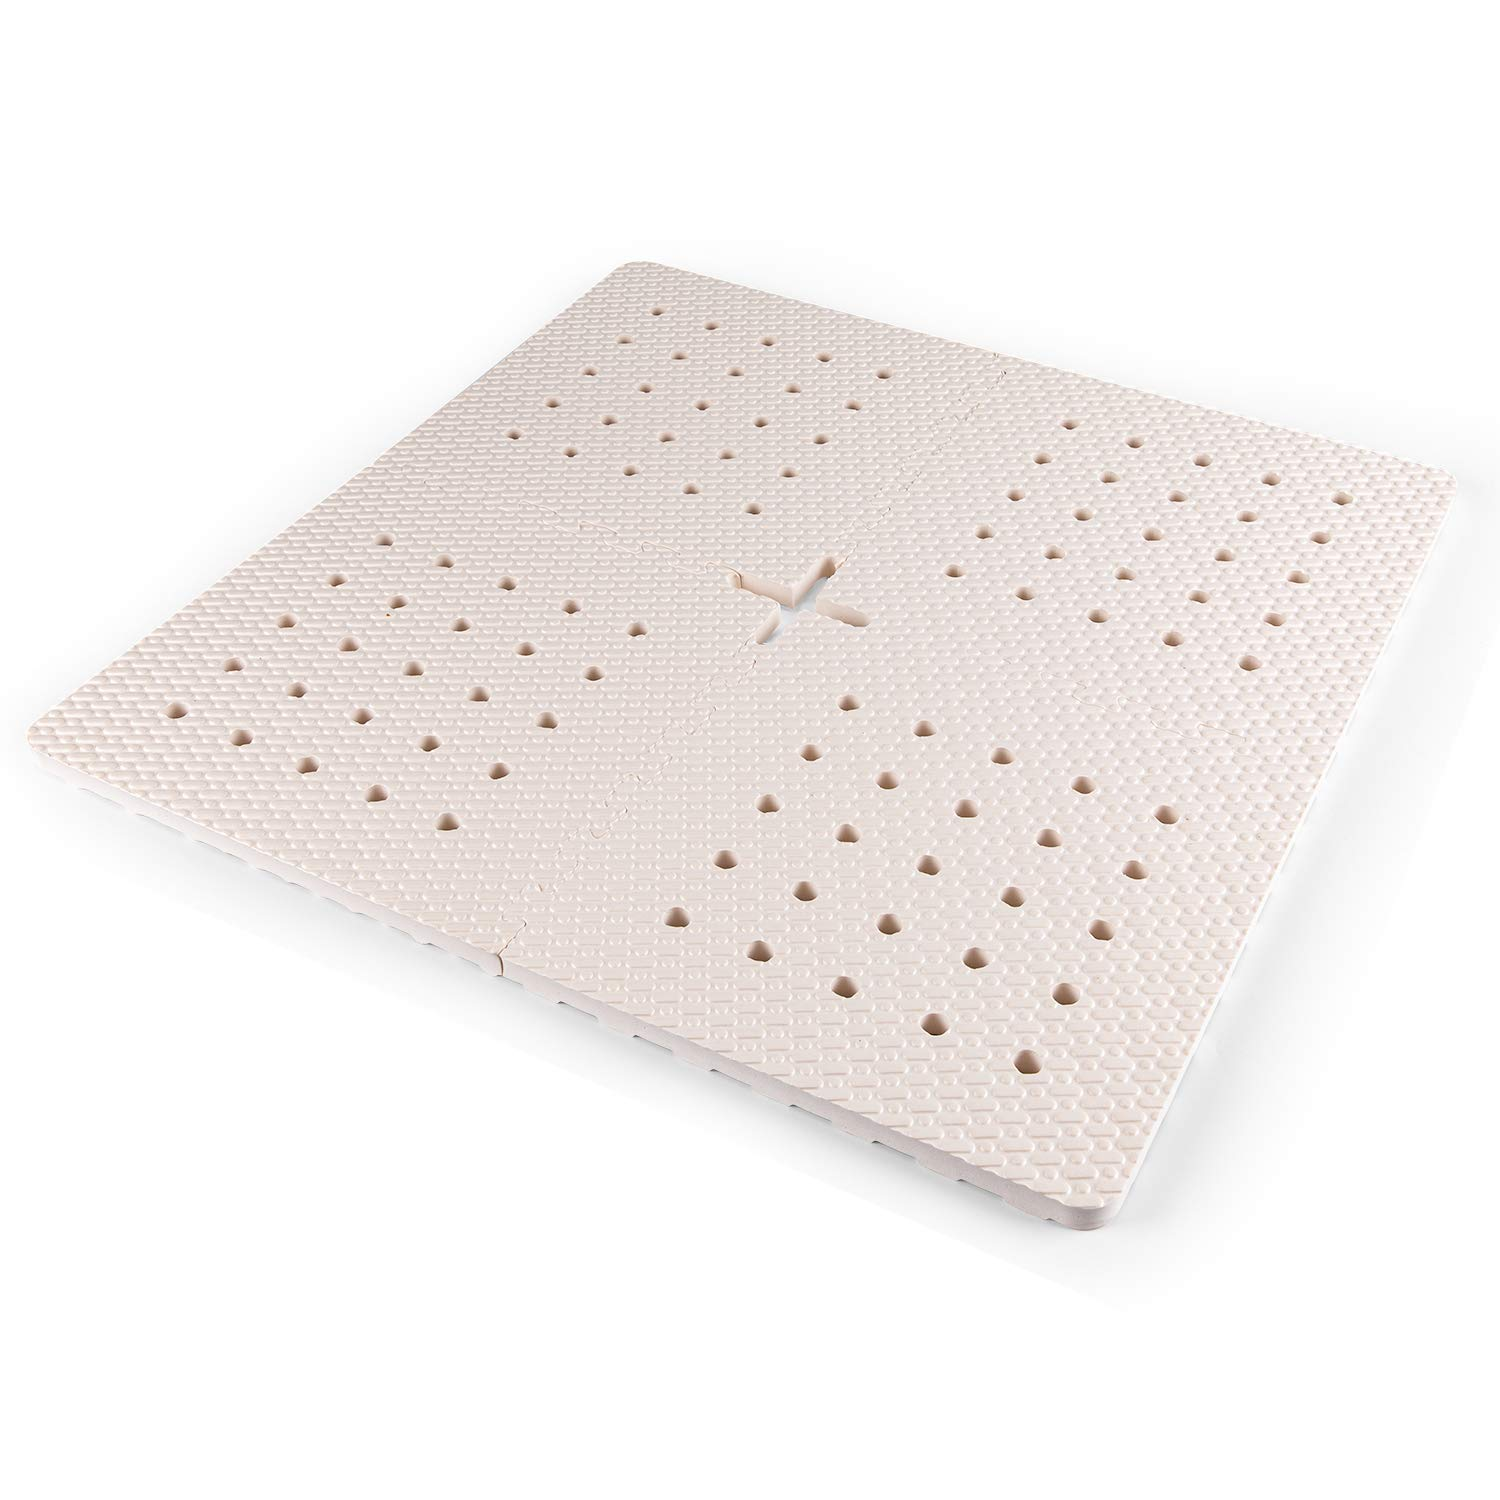 BOWERBIRD Original Anti-Fatigue Shower Stall Mat - Extra Thick and Soft Foam Material Comfortably Cushions Your Feet - Square - Textured with Drain Hole by BOWERBIRD